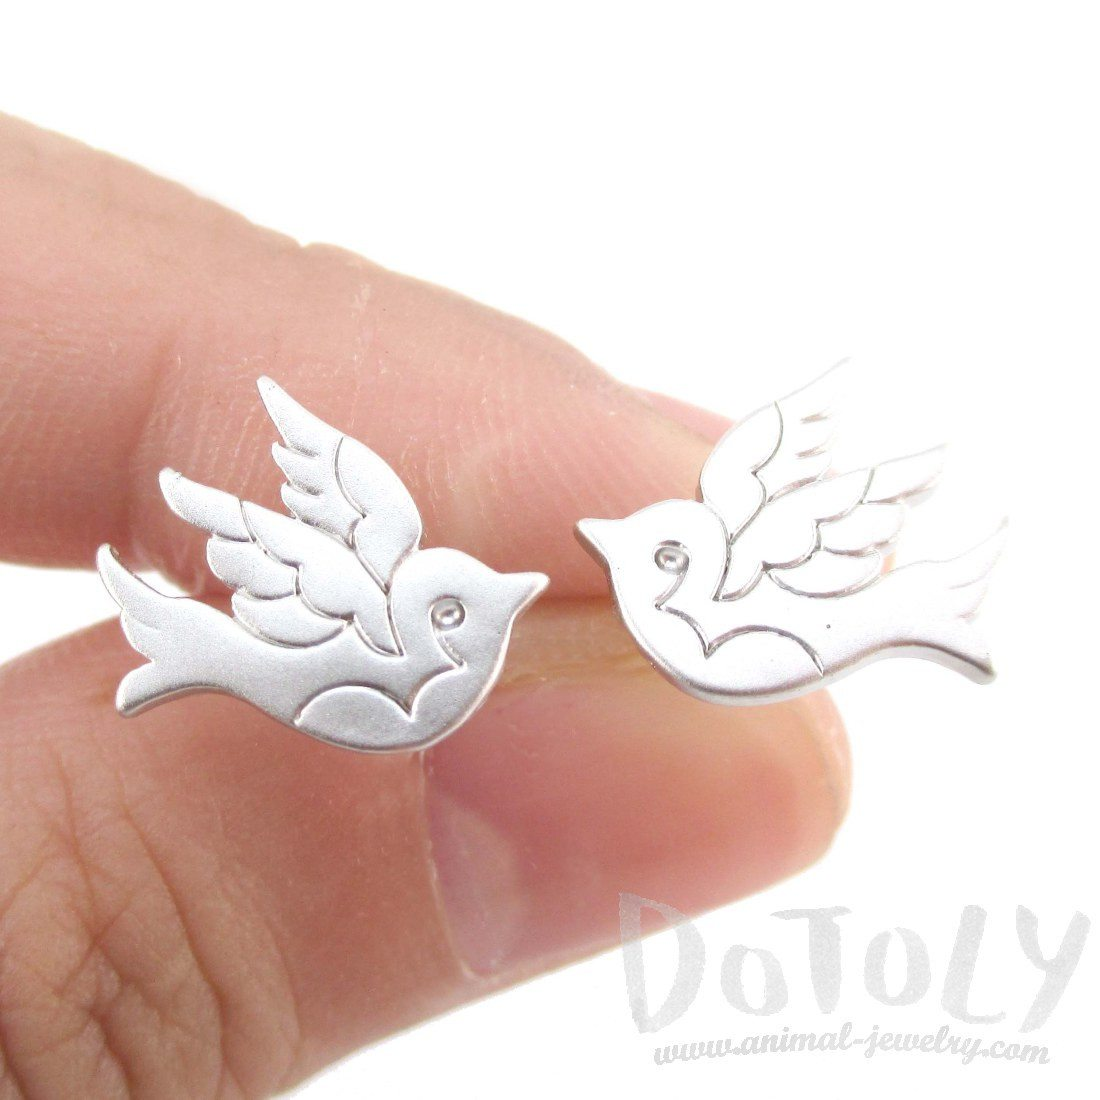 Sparrow Bird Tattoo Shaped Stud Earrings in Silver